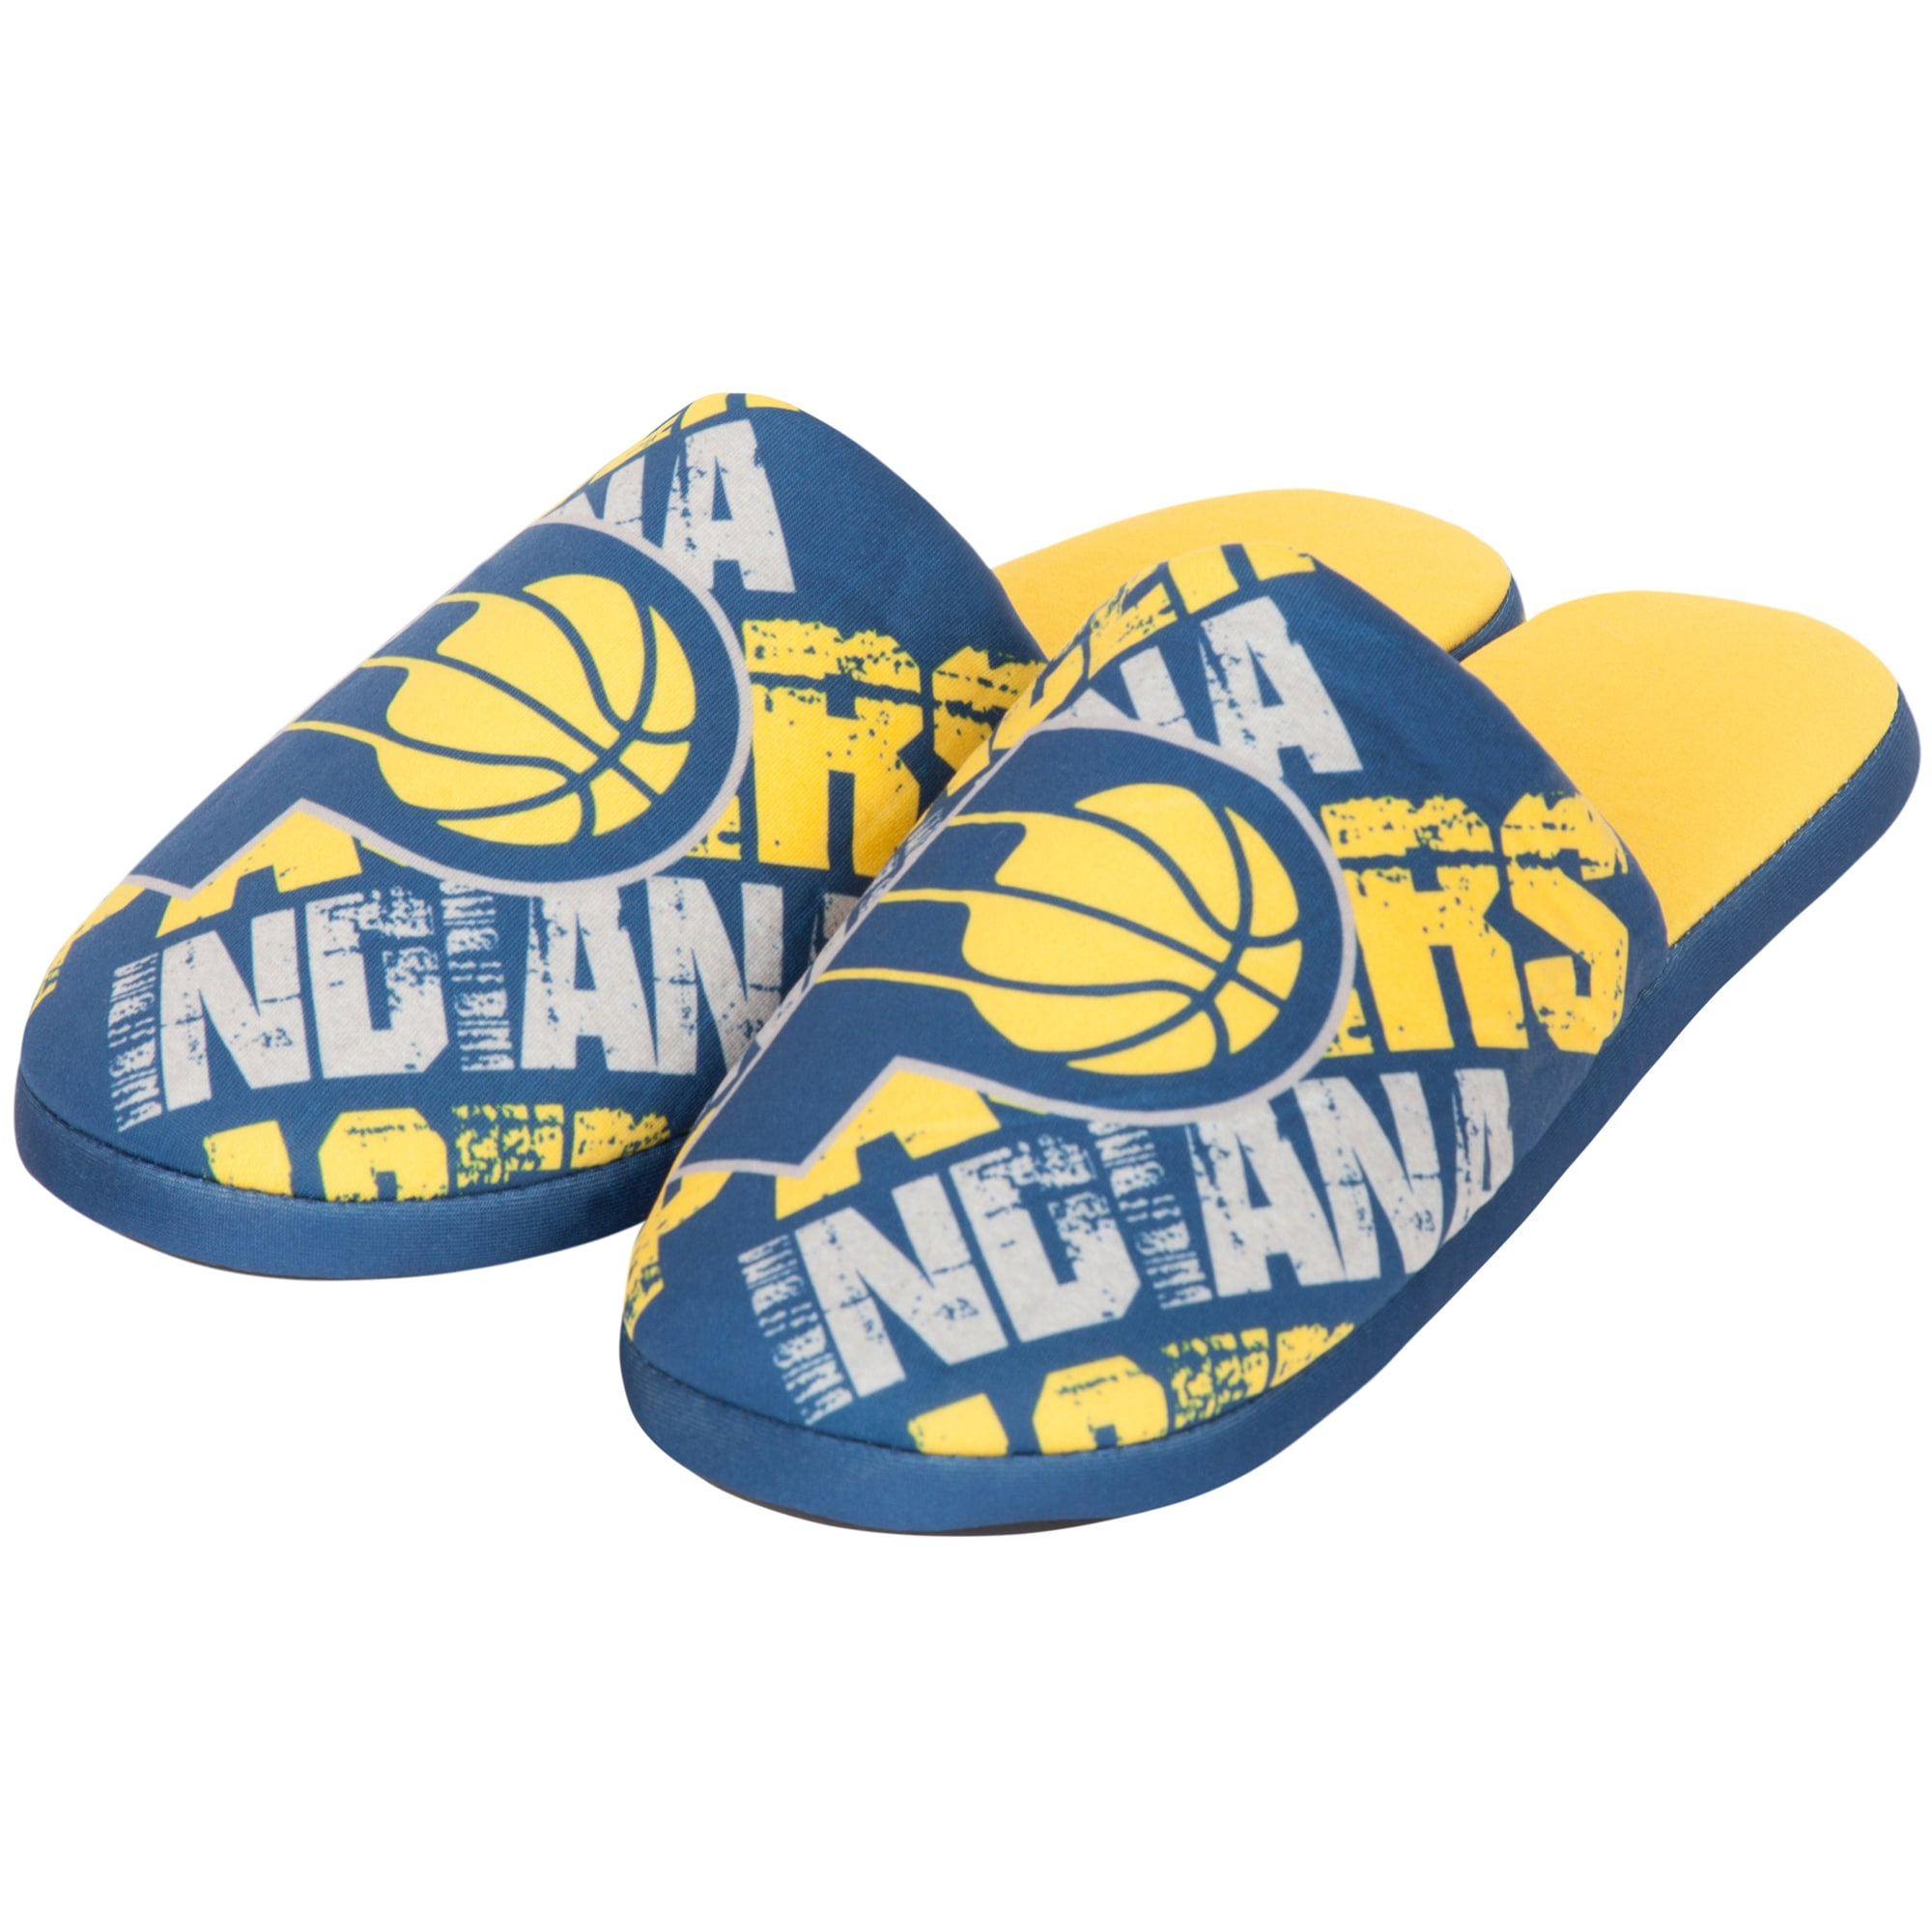 Indiana Pacers Digital Print Slippers - Navy